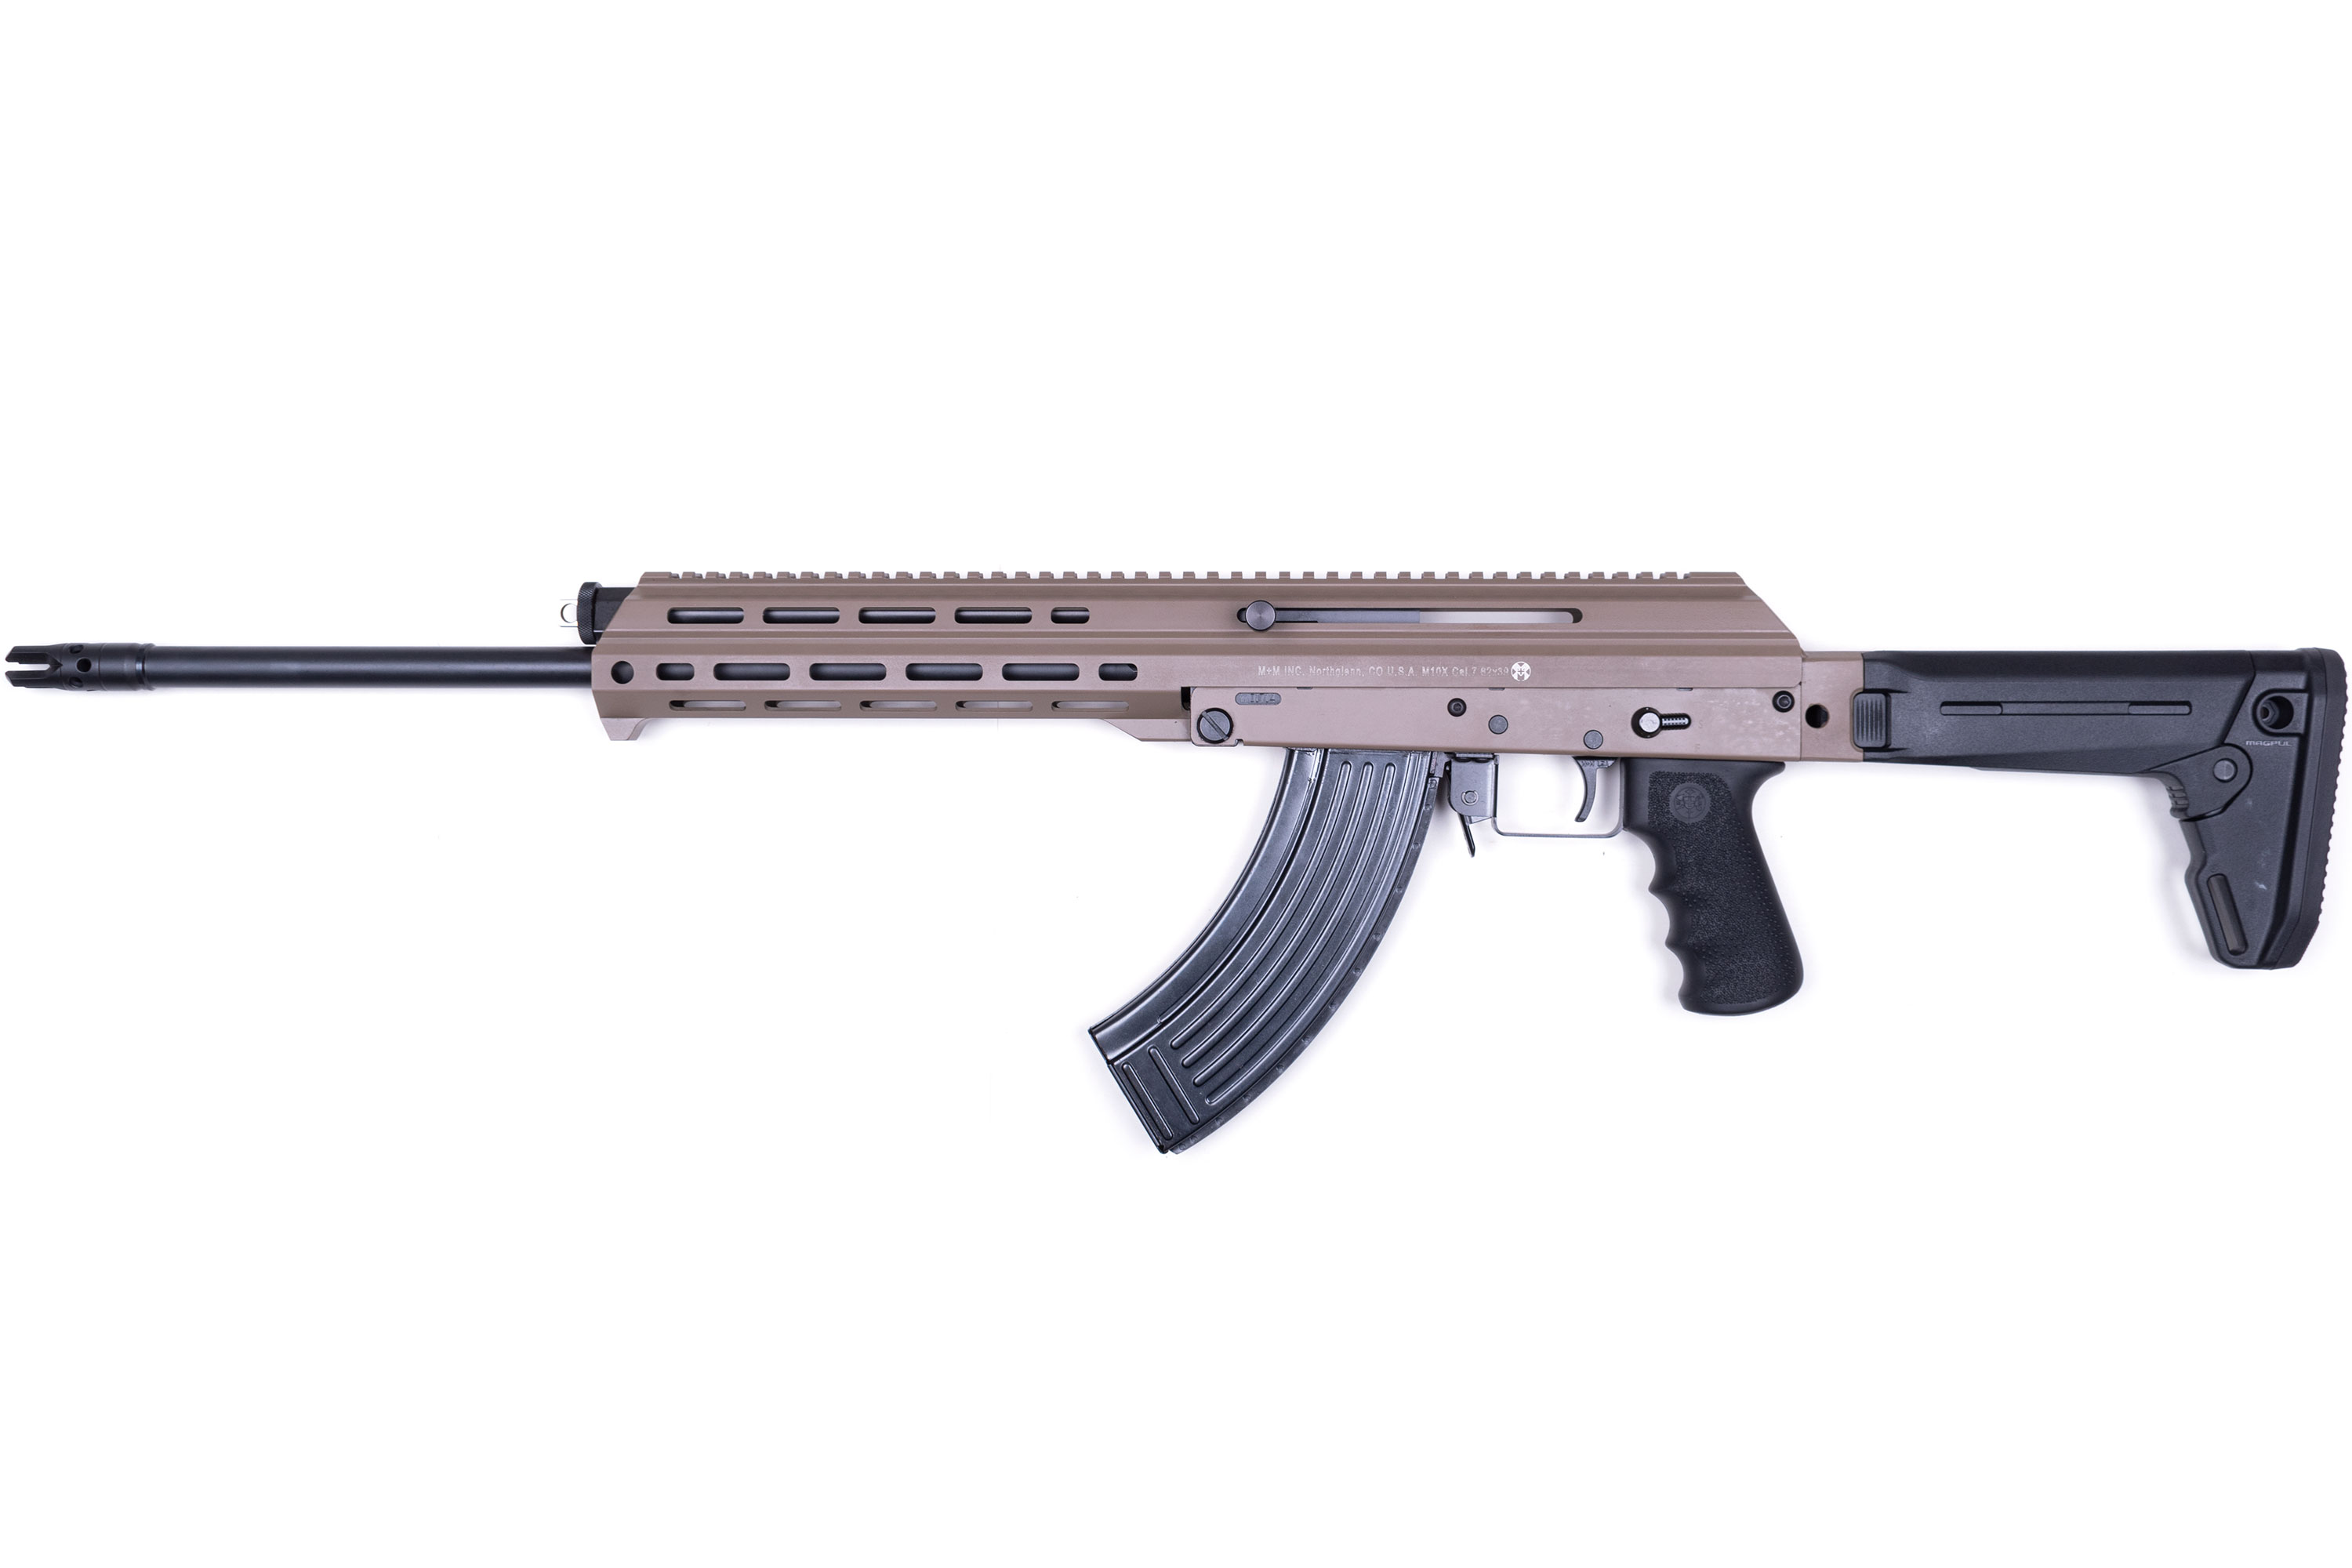 M+M M10x DMR coming soon in FDE finish